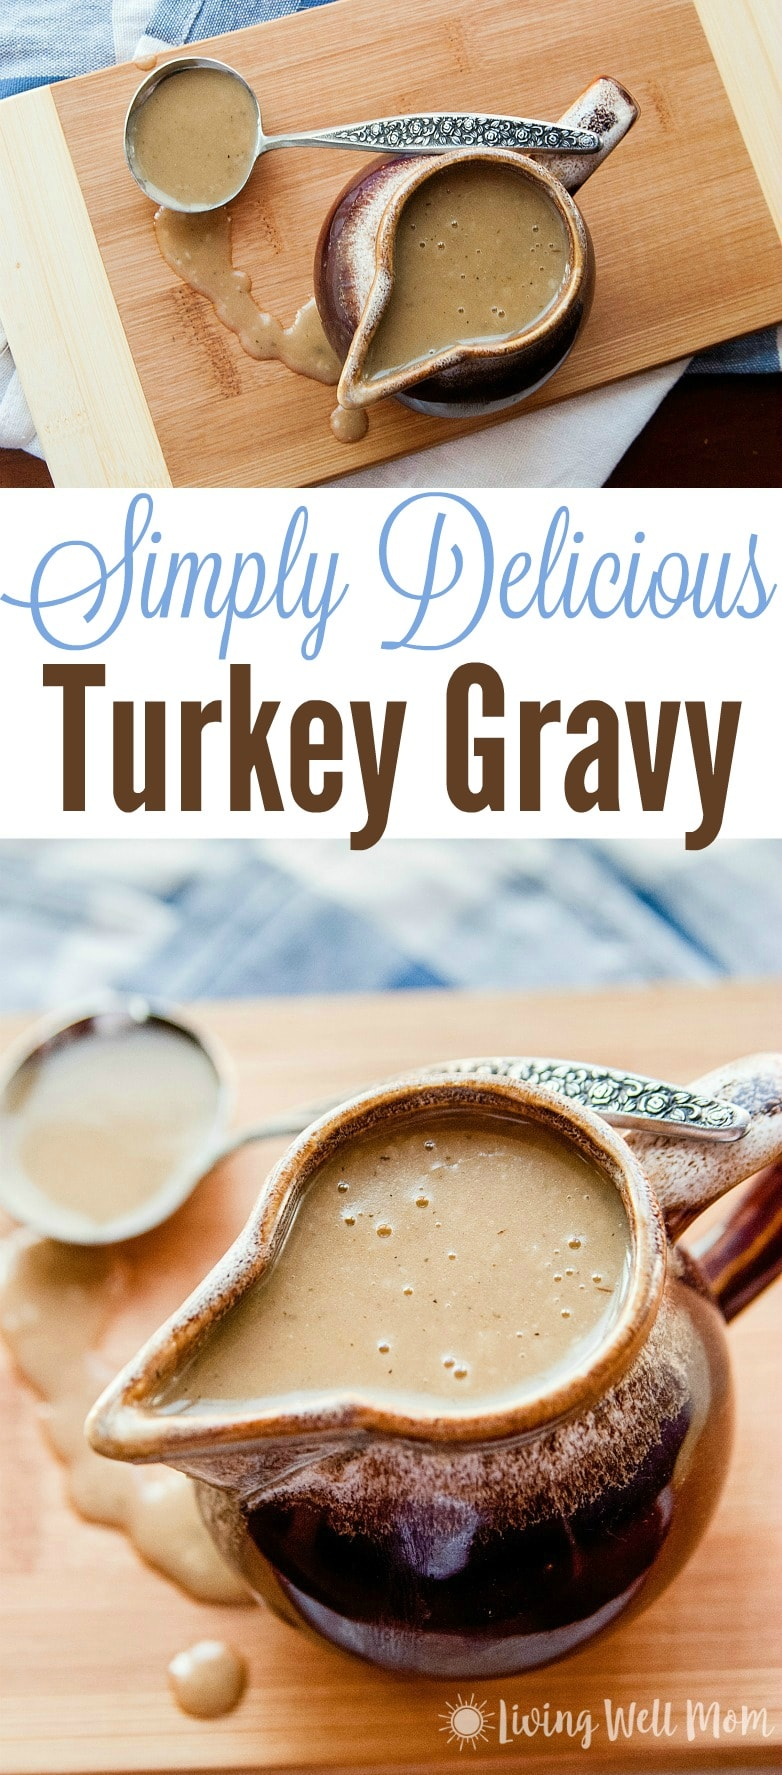 Simply Delicious Turkey Gravy